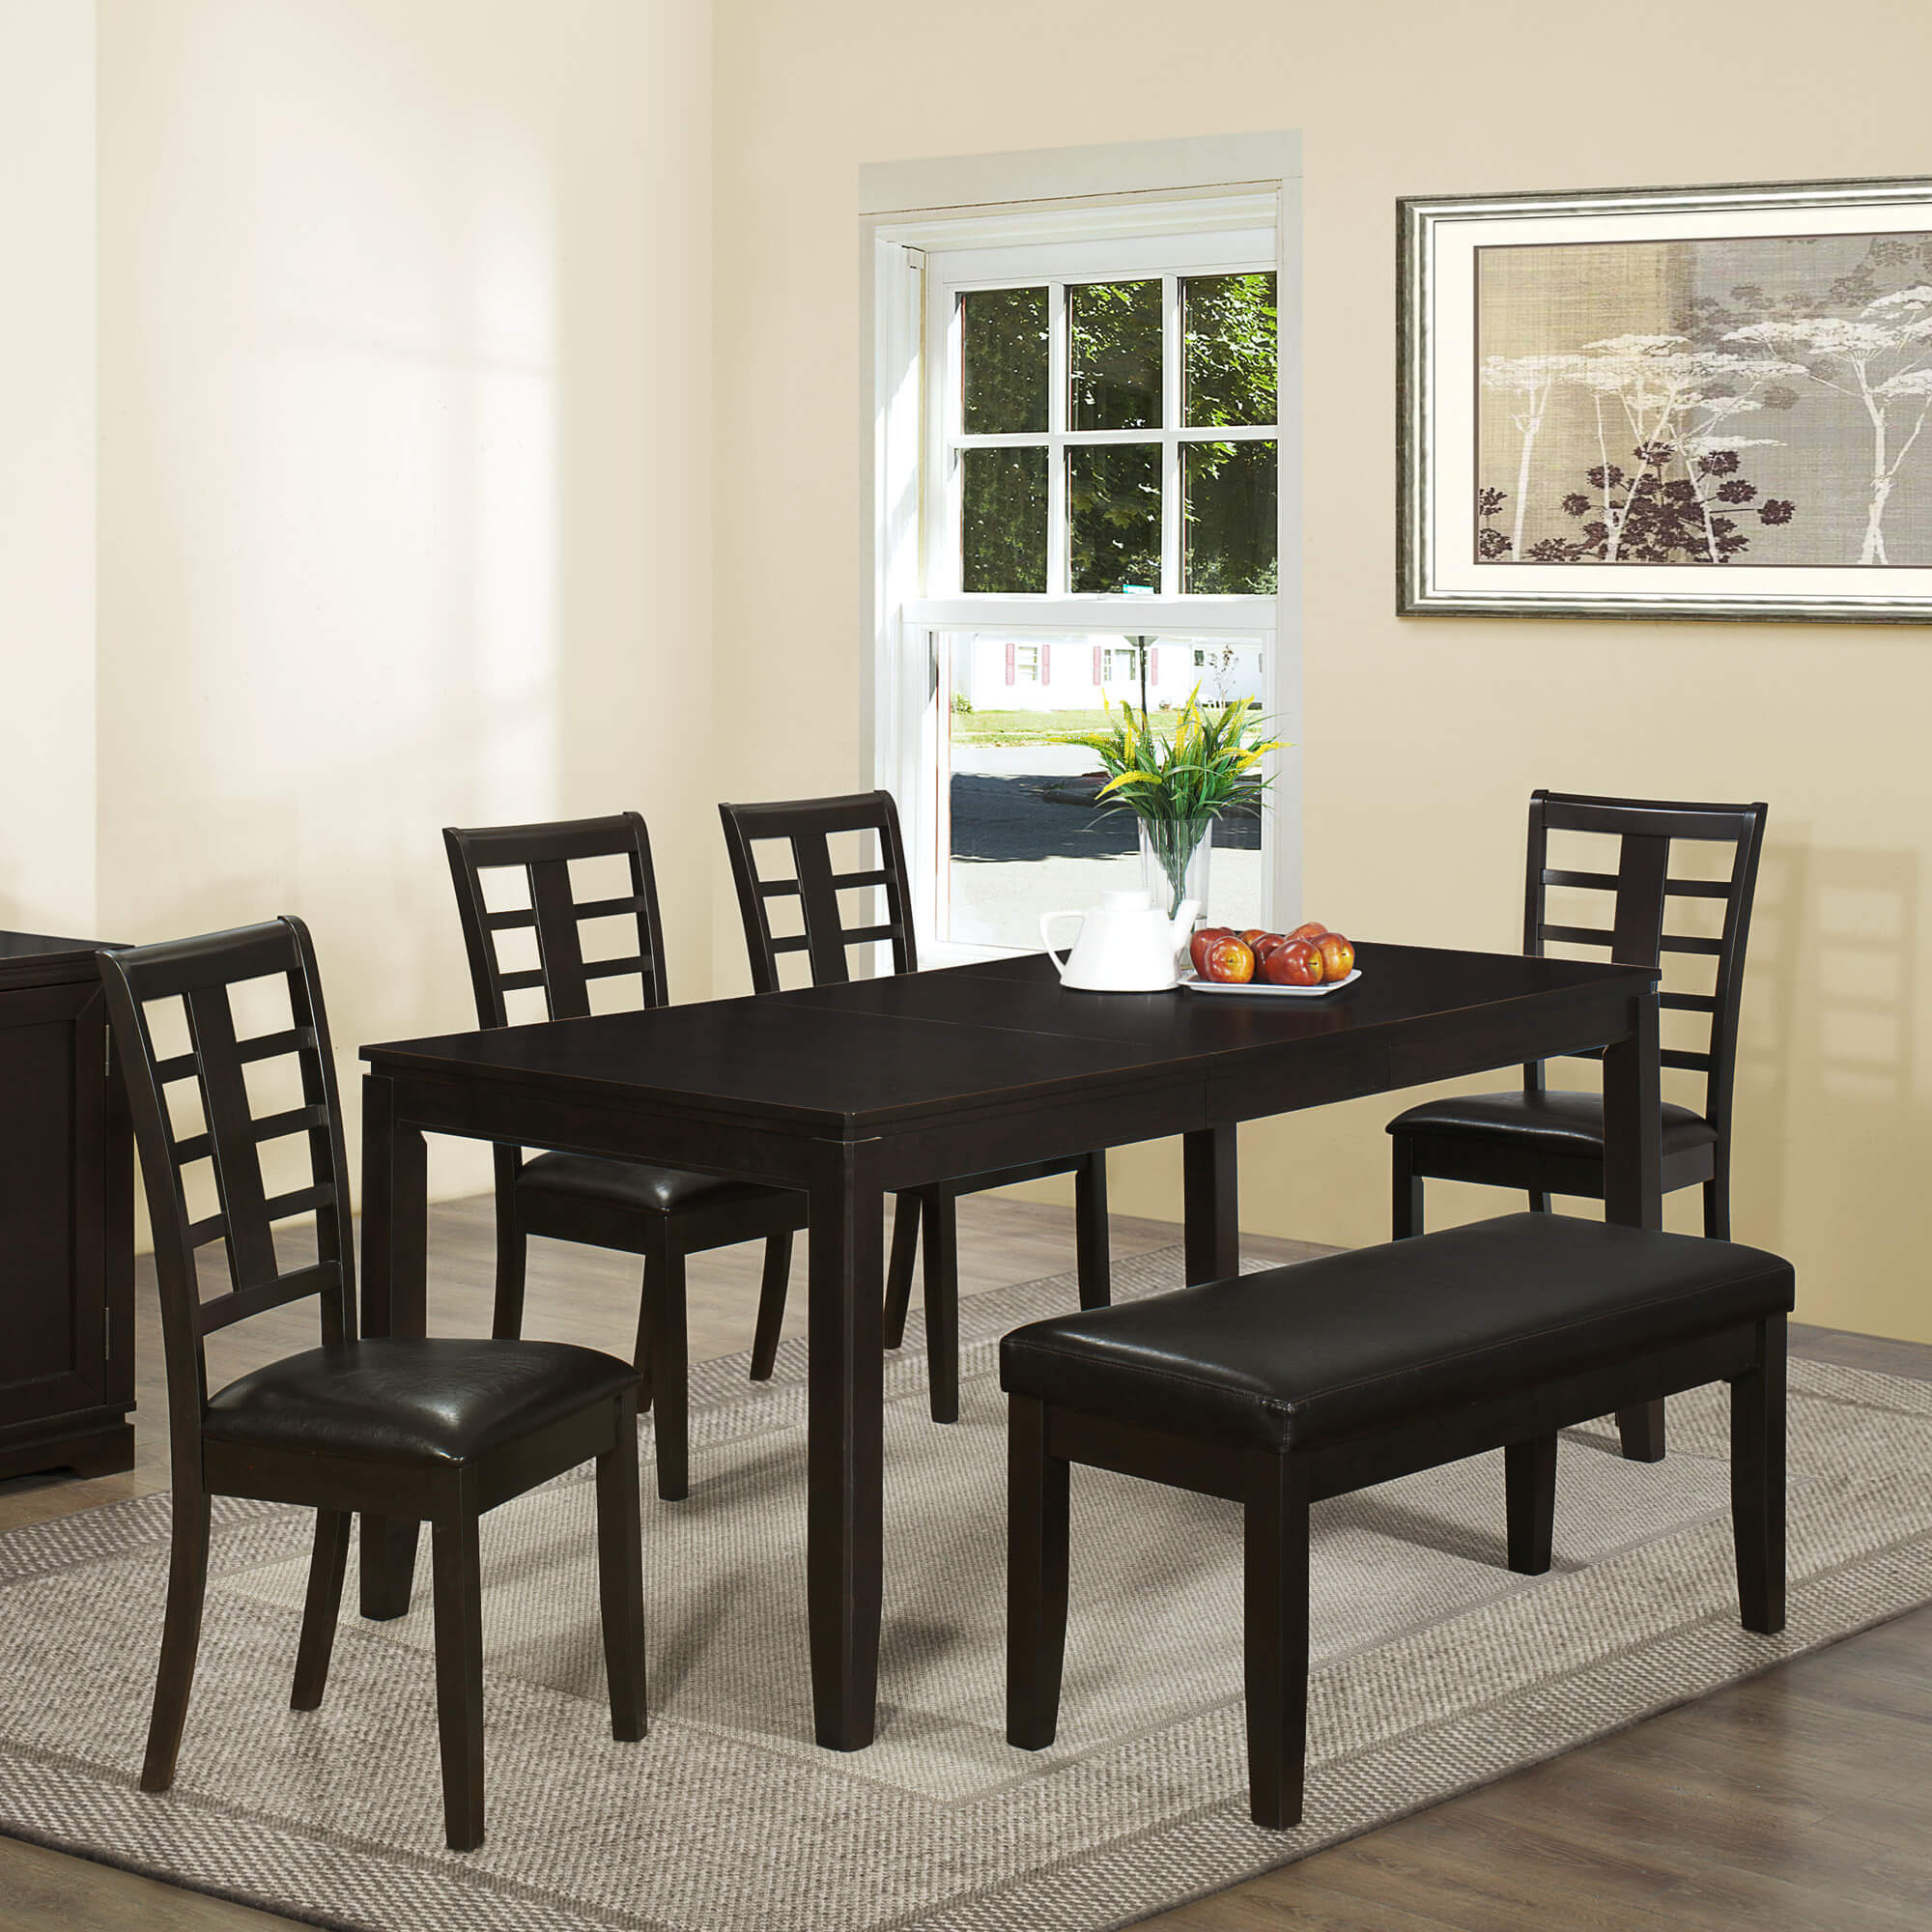 dining room sets bench seating kitchen table chairs Contemporary Asian inspired dining set with bench is a good size being able to accommodate